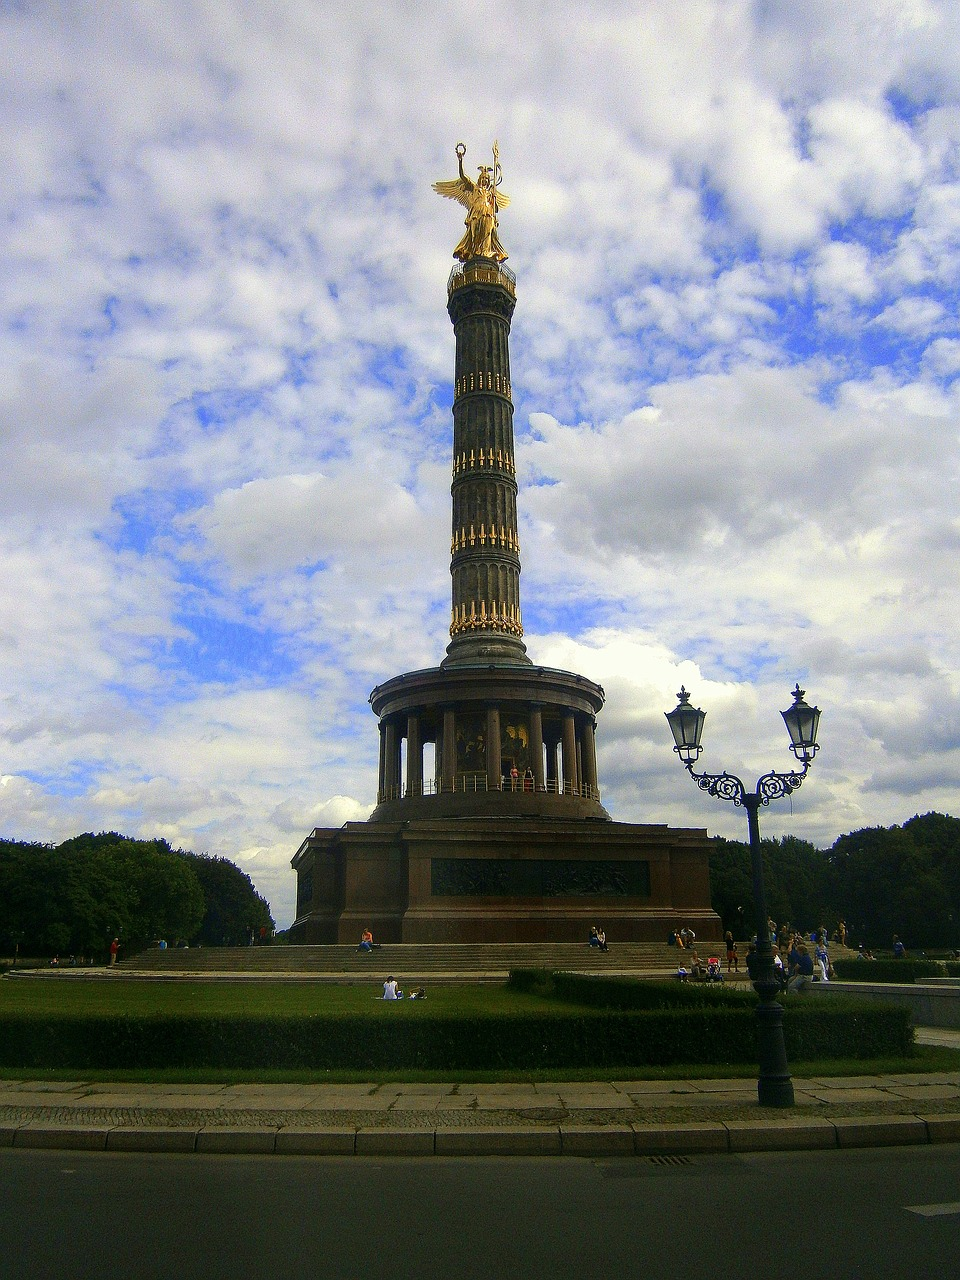 siegessäule pillar berlin free photo